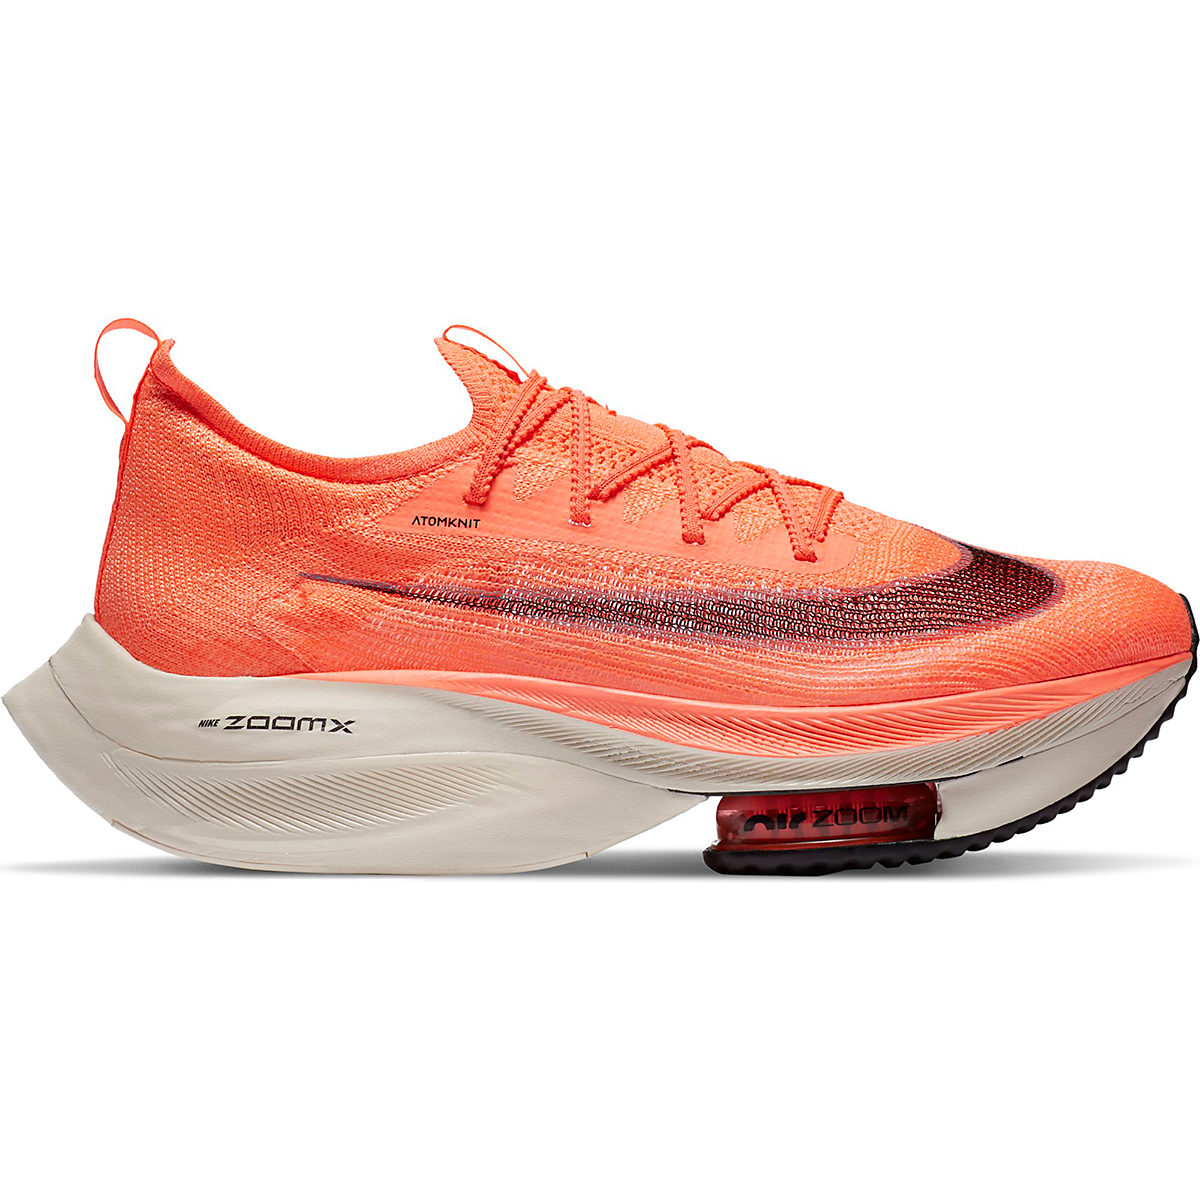 Men's Nike Air Zoom Alphafly NEXT% Running Shoe - Color: Bright Mango/Citron Pulse - Size: 6 - Width: Regular, Bright Mango/Citron Pulse, large, image 1